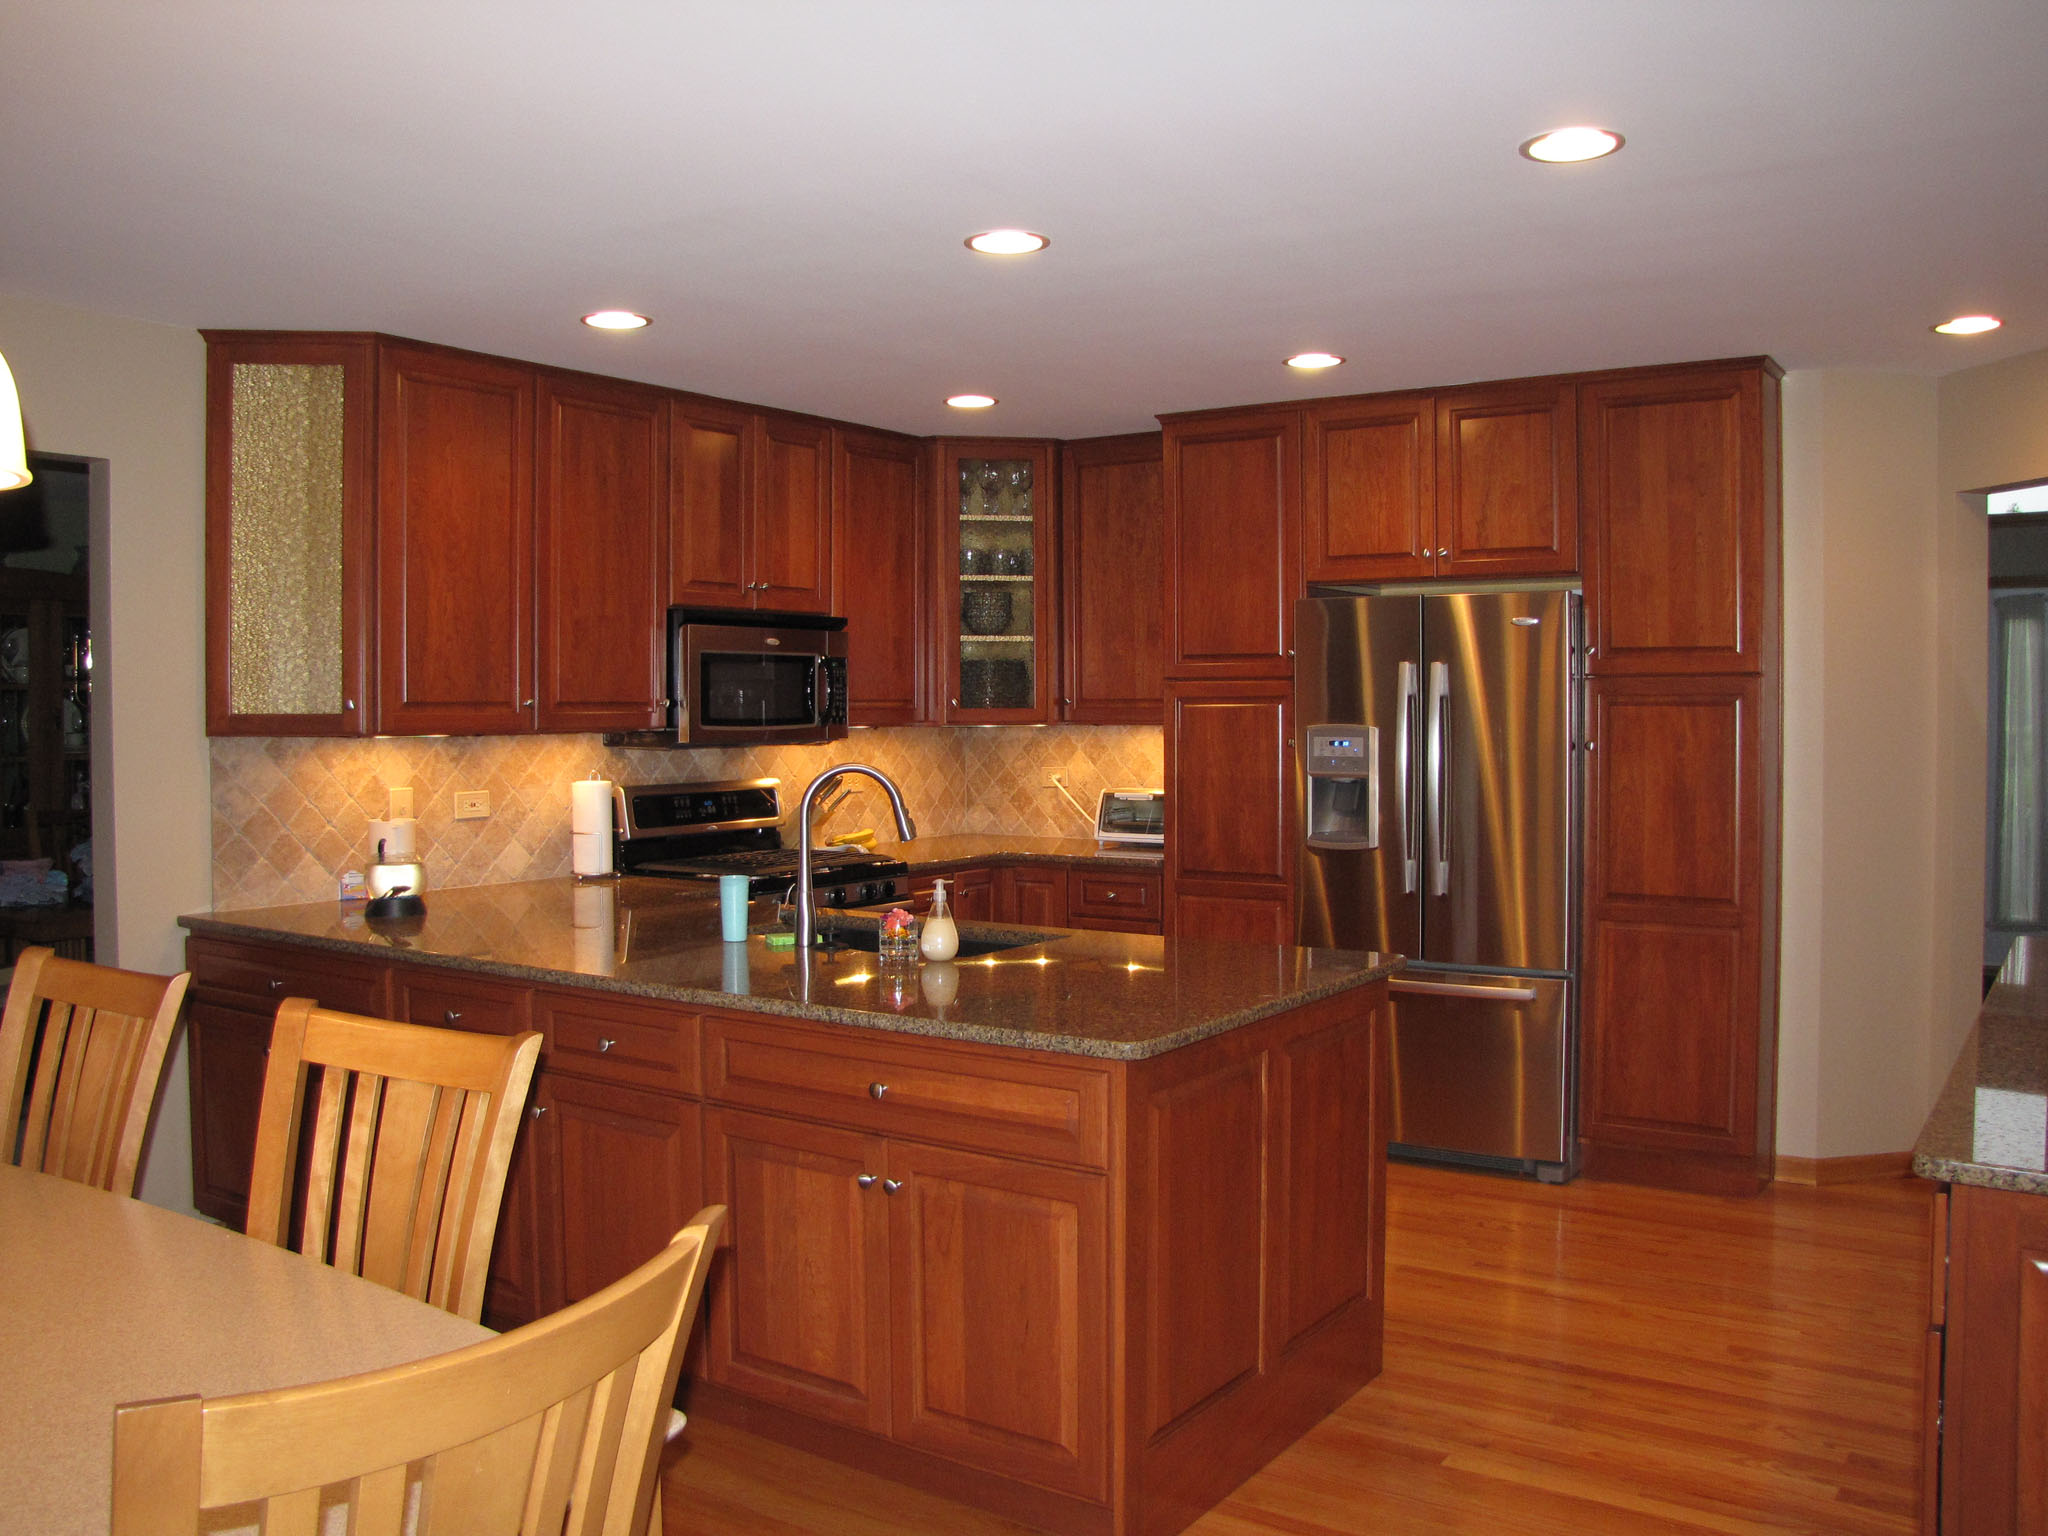 Traditional mokena kitchen remodel halo construction for Remodeling your kitchen ideas